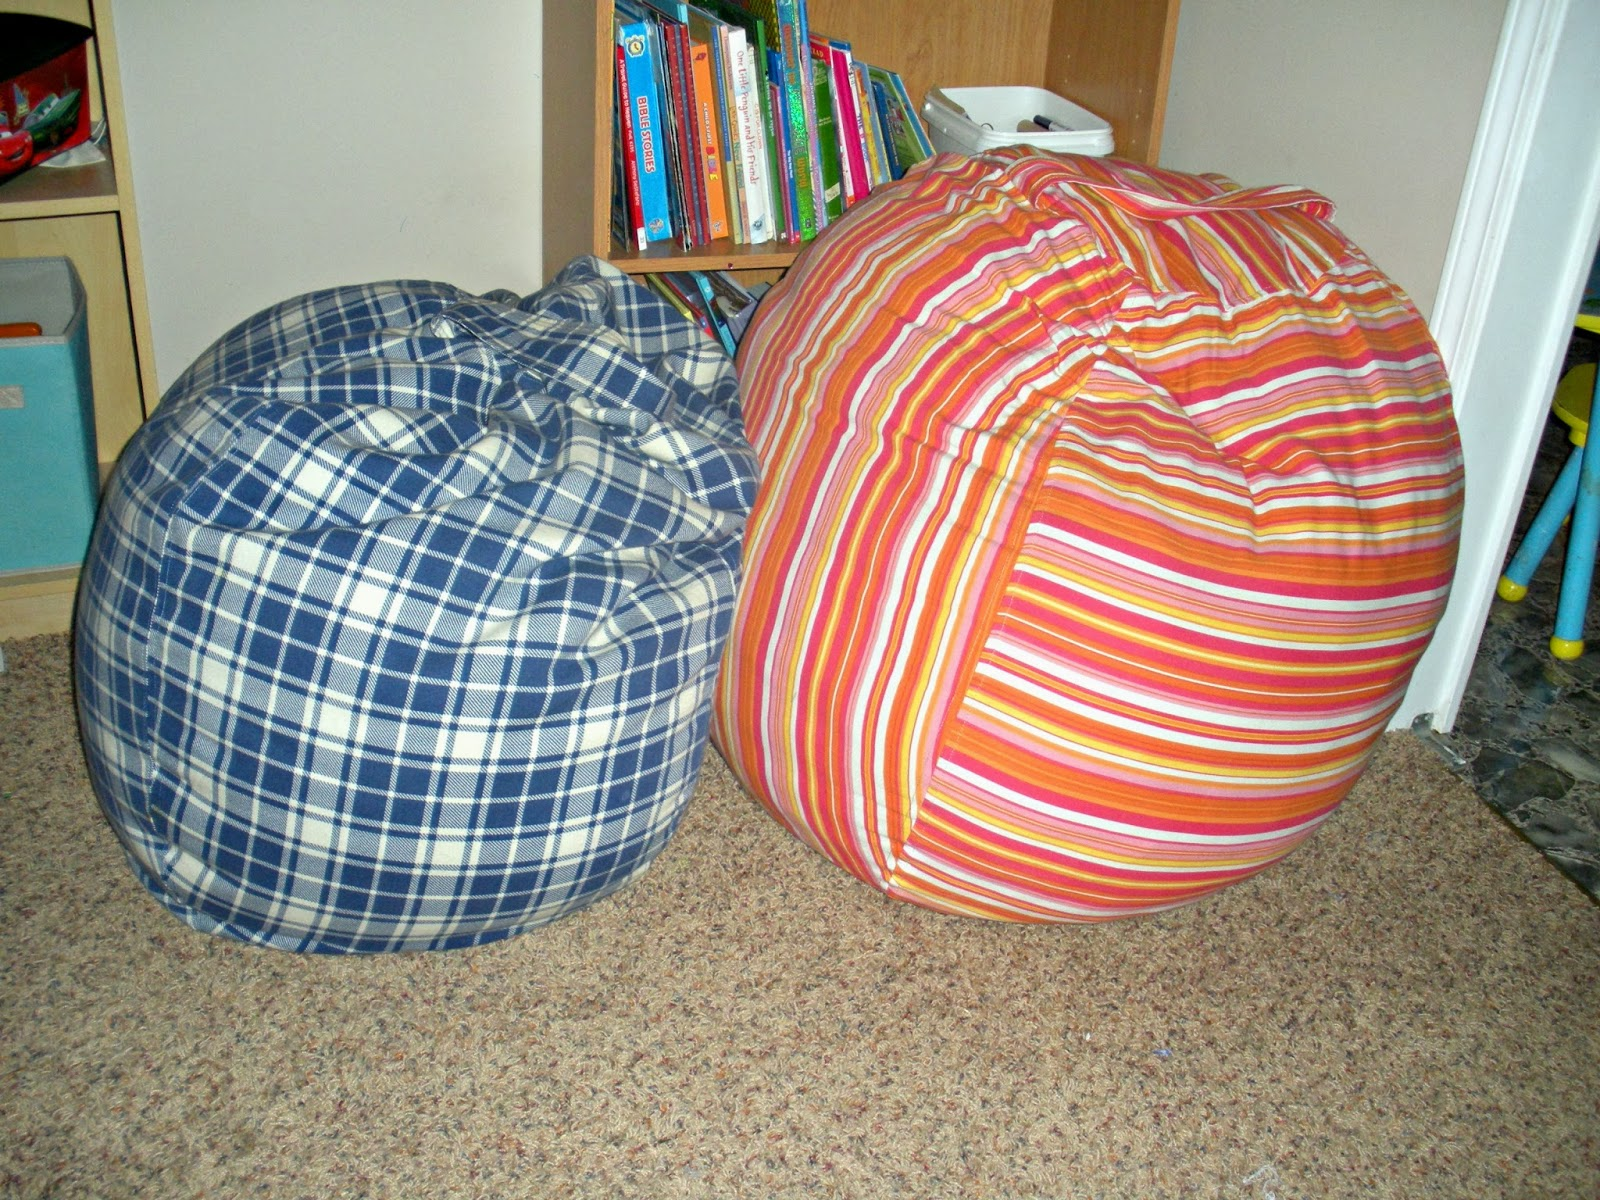 paper tape pins diy rollie pollie bean bag chairs 3 years later. Black Bedroom Furniture Sets. Home Design Ideas